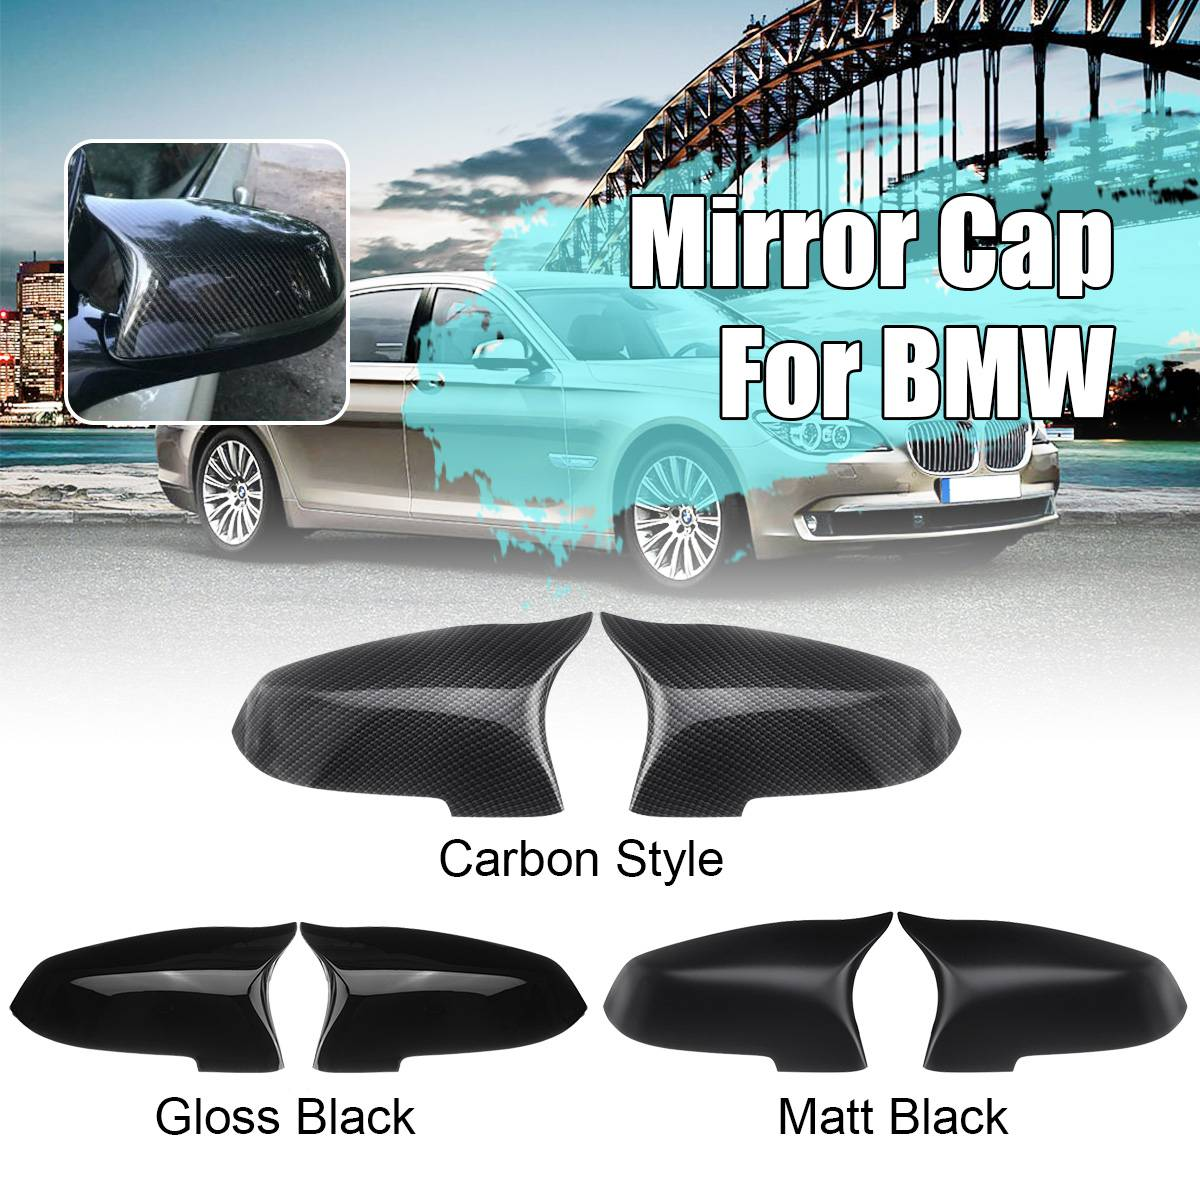 Pair LH RH Side Rearview Mirror Cover Cap For BMW 5 6 7 Series F10 F18 F11 F06 F07 F12 F13 F01 2014 2015 2016 Mirror Covers